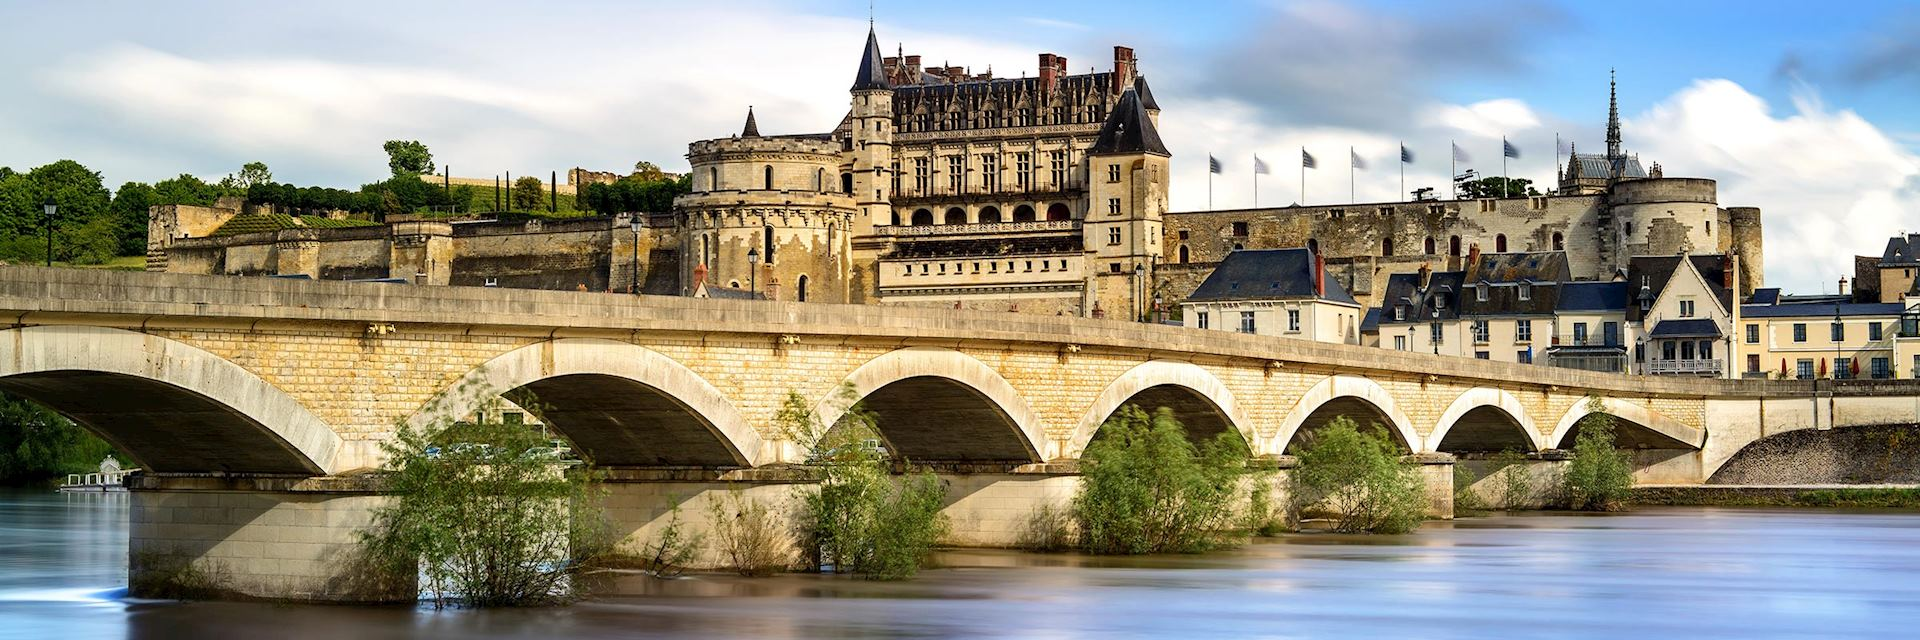 Amboise, Loire Valley